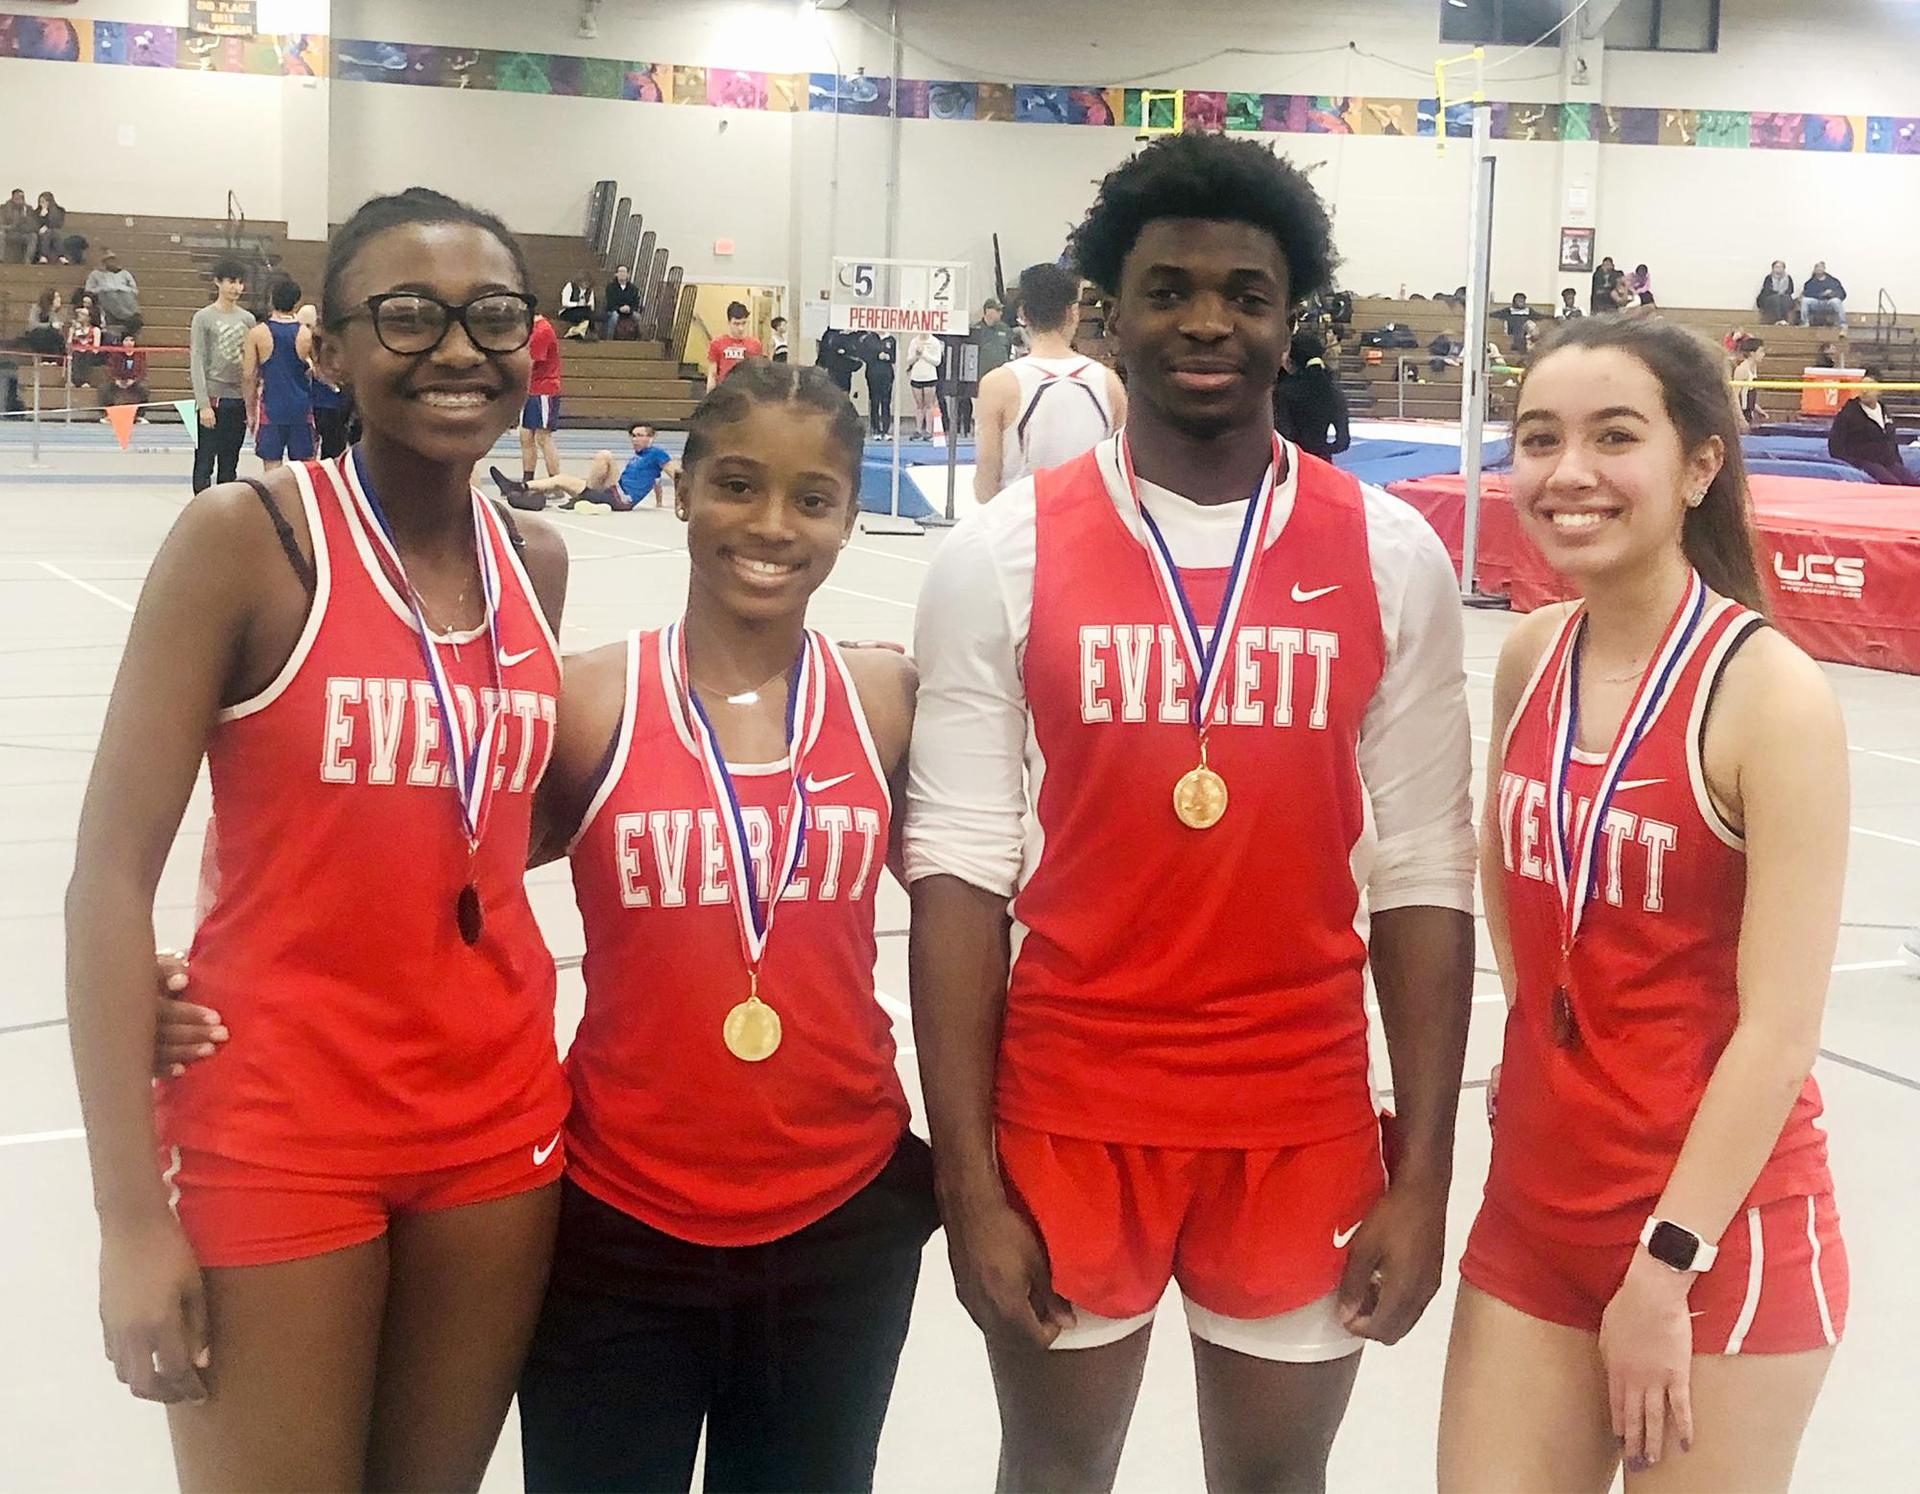 Posed photo, track athletes wearing their medals